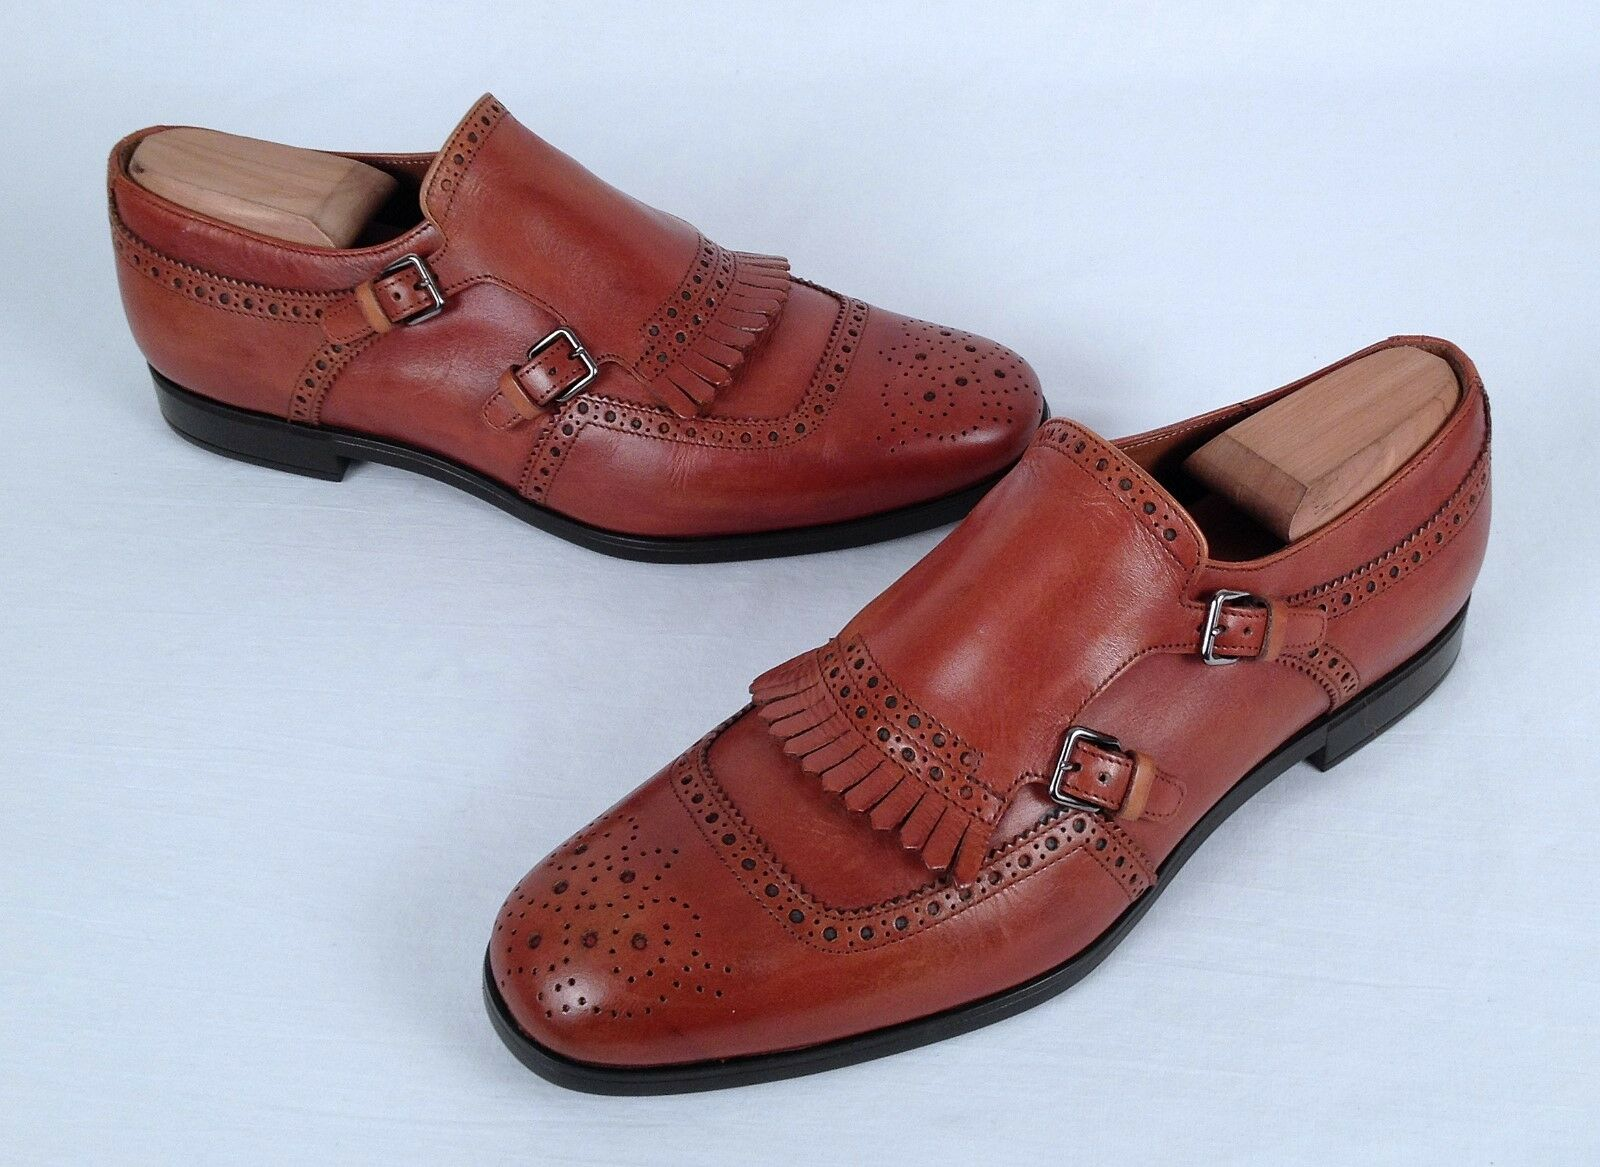 Prada Kiltie Double Monk Strap Loafer- Walnut Calf- Size 7 US  6 UK   770  (S4)